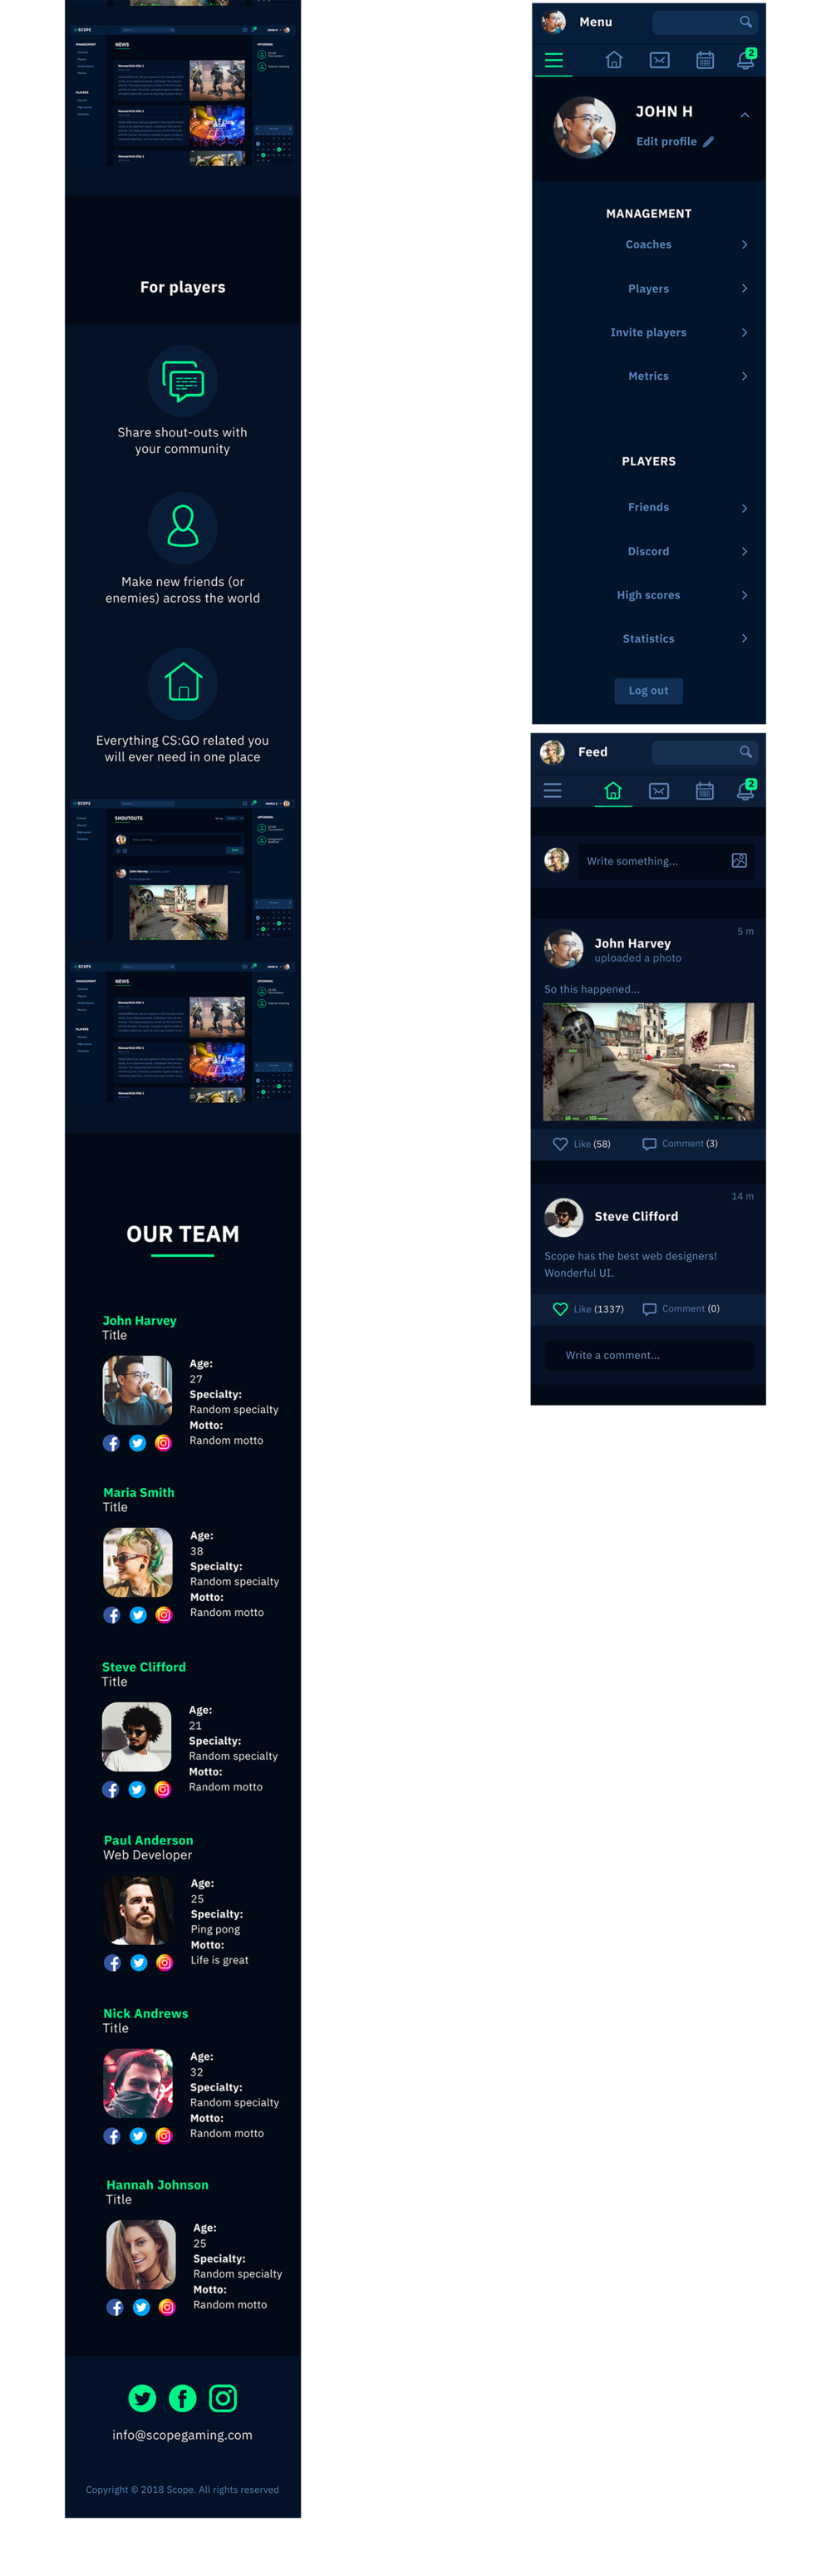 All the same pages in mobile version. The homepage to the right. And to the left: sign up for manager, manager logged in, manager menu, player logged in.